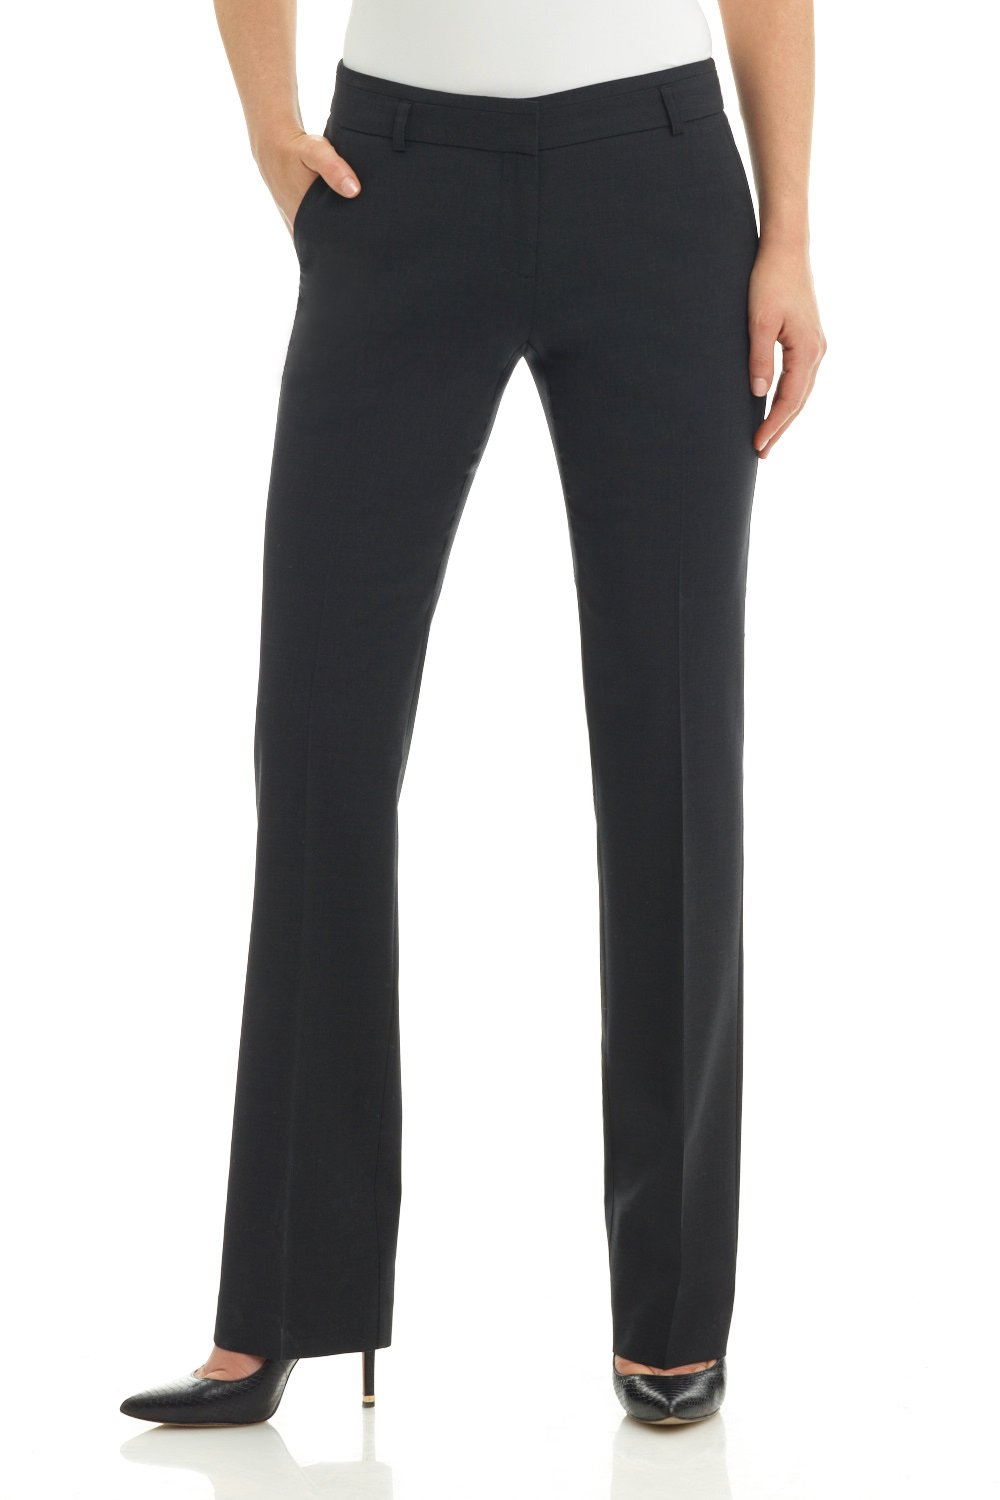 Rekucci Collection Women's Straight Leg Dress Pant with Double Loops (14,Charcoal)